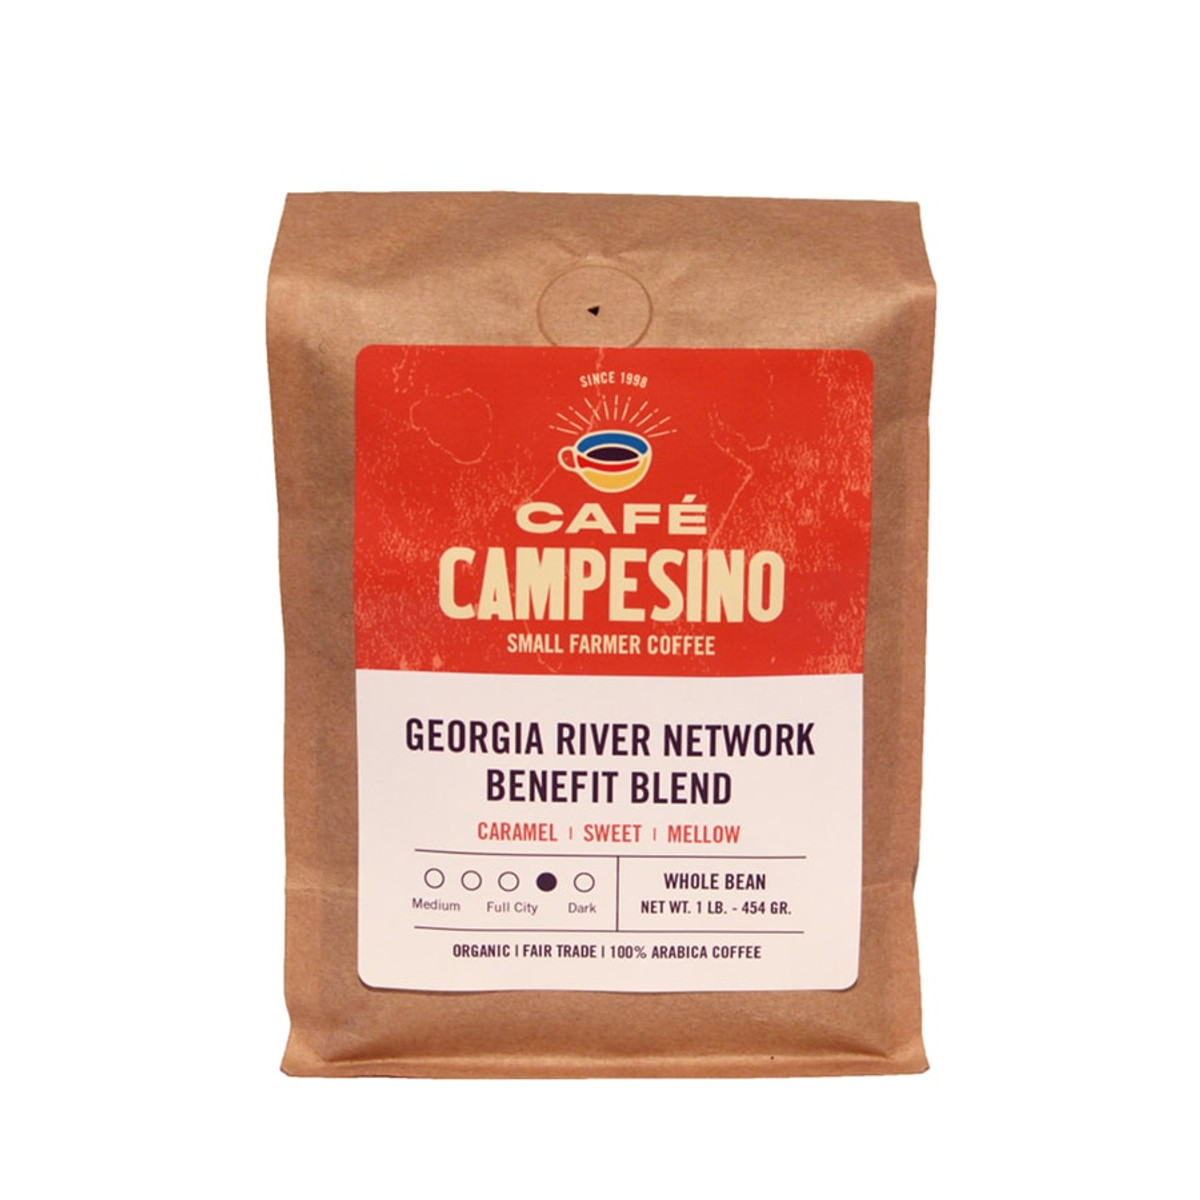 A robust blend of Latin American and Indonesian coffees. When you buy this blend, we will donate 10% of your coffee sale to the Georgia River Network to support the work they do to ensure a clean water legacy in all of Georgia's rivers.